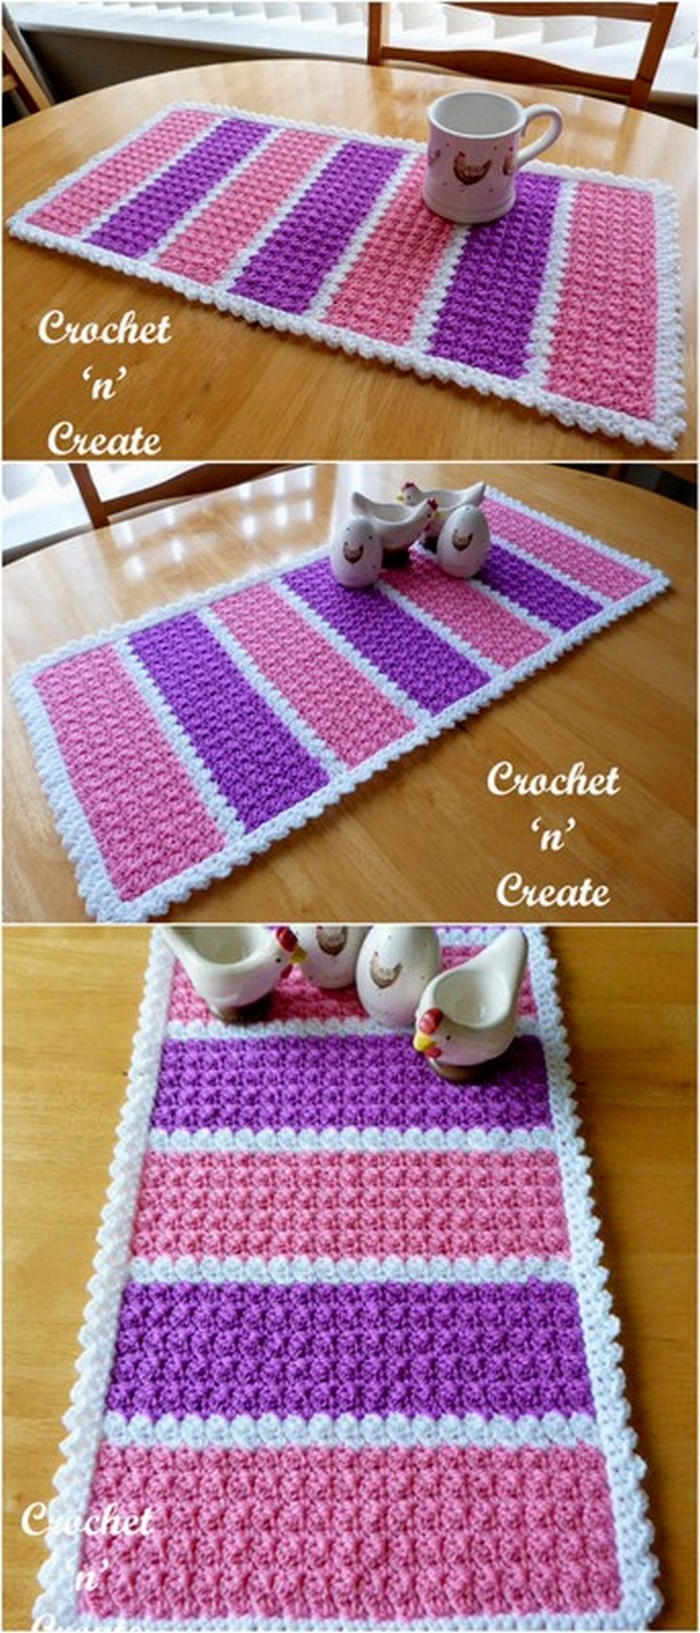 Simple And Nice Mat Free Crochet Pattern